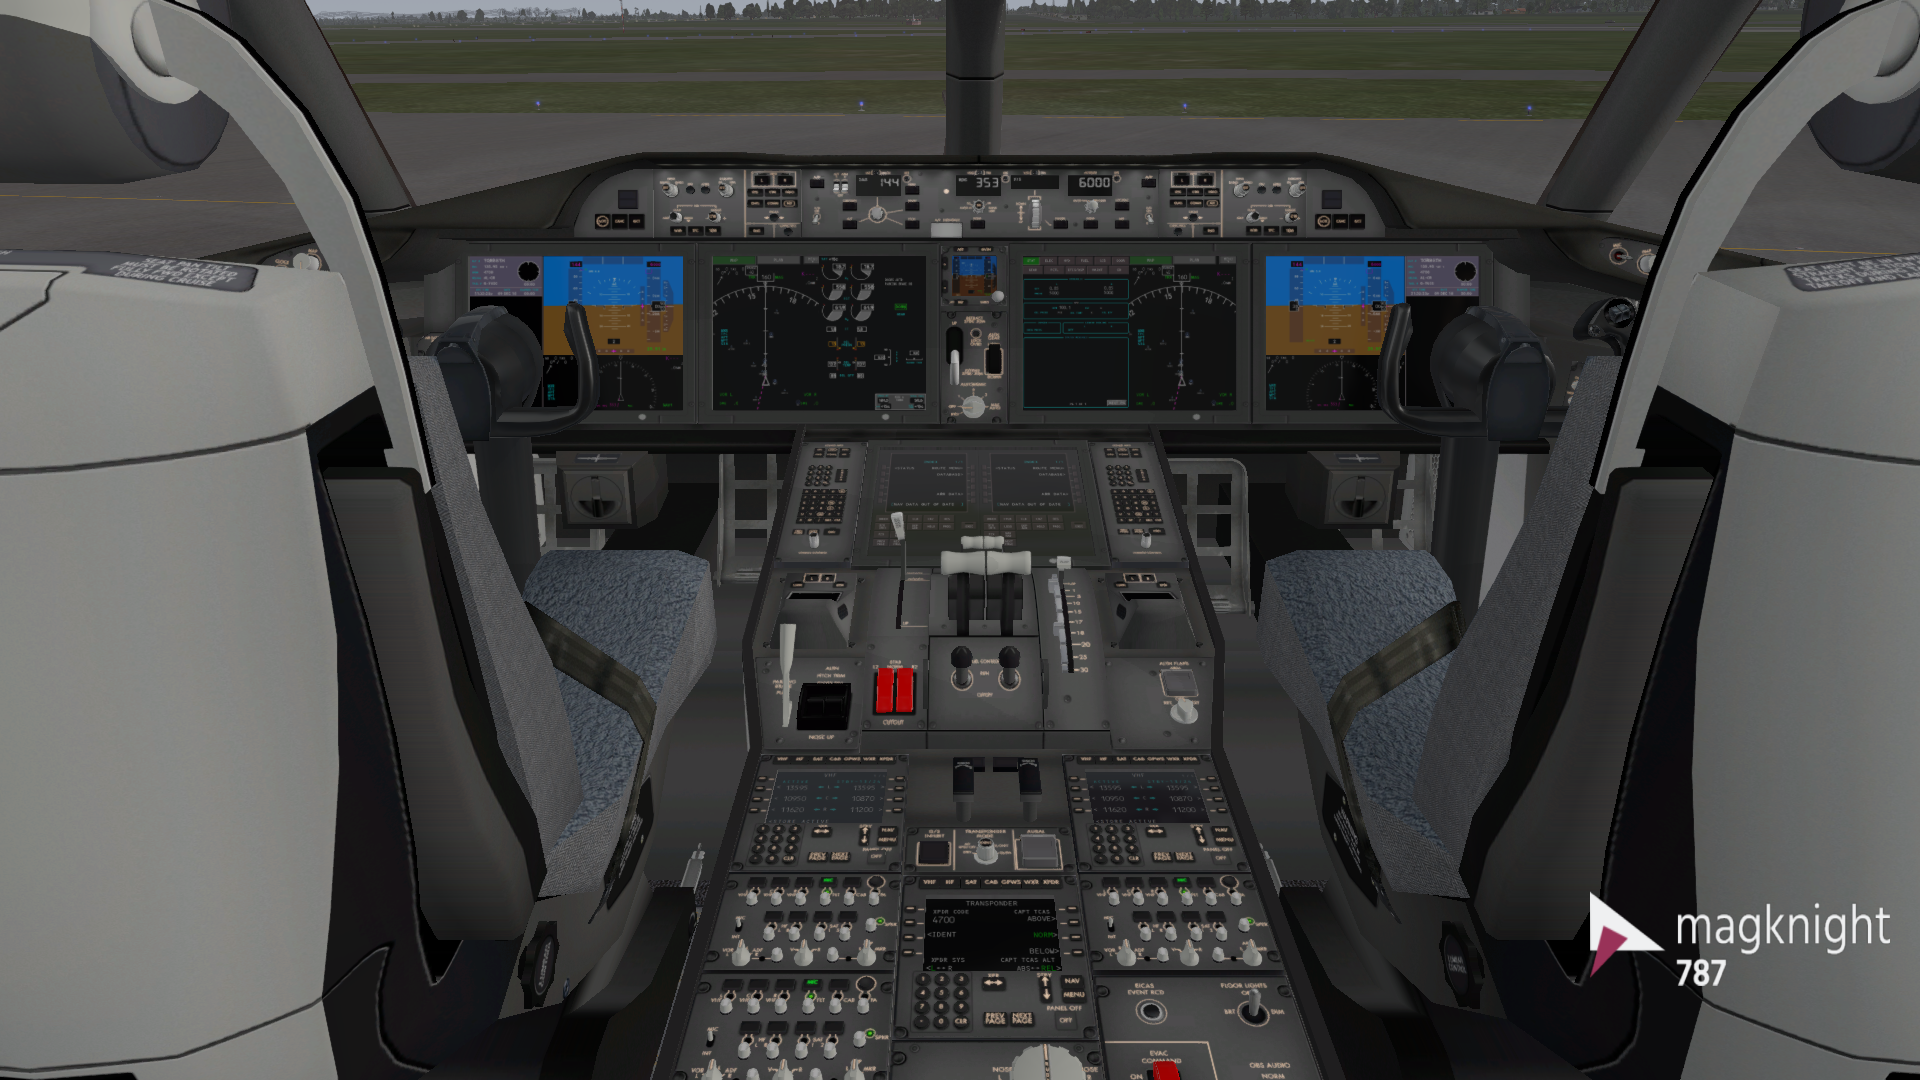 EDITED] Magknight's 787-9 unveils massive update